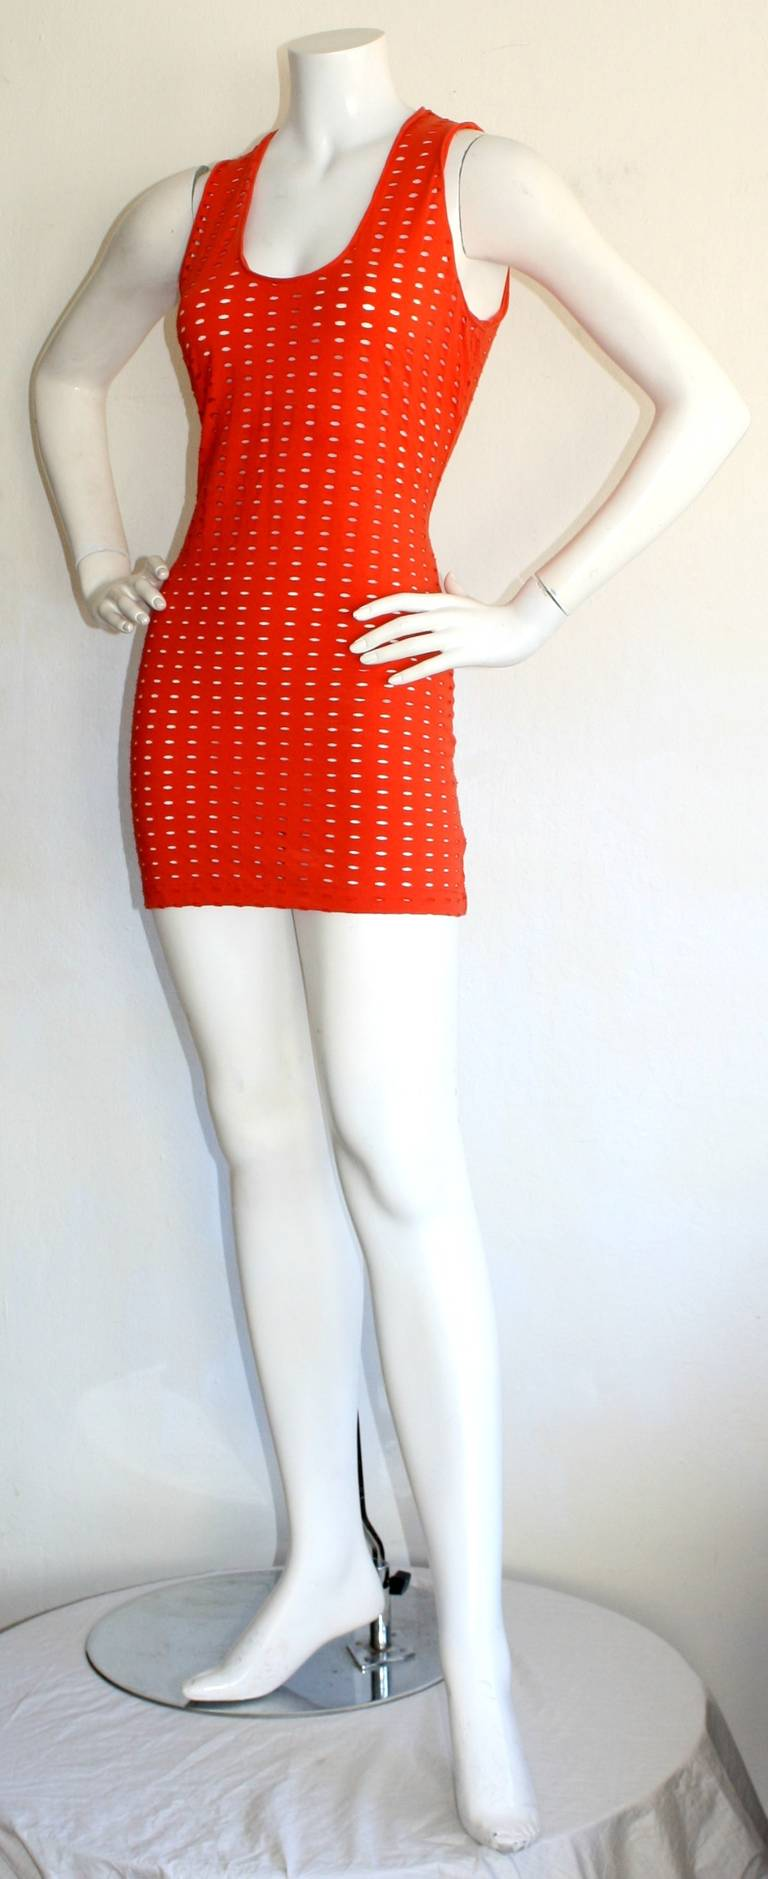 Gianni Versace Couture Vintage Red Cut - Out Dress 1990s Pre - Death 2